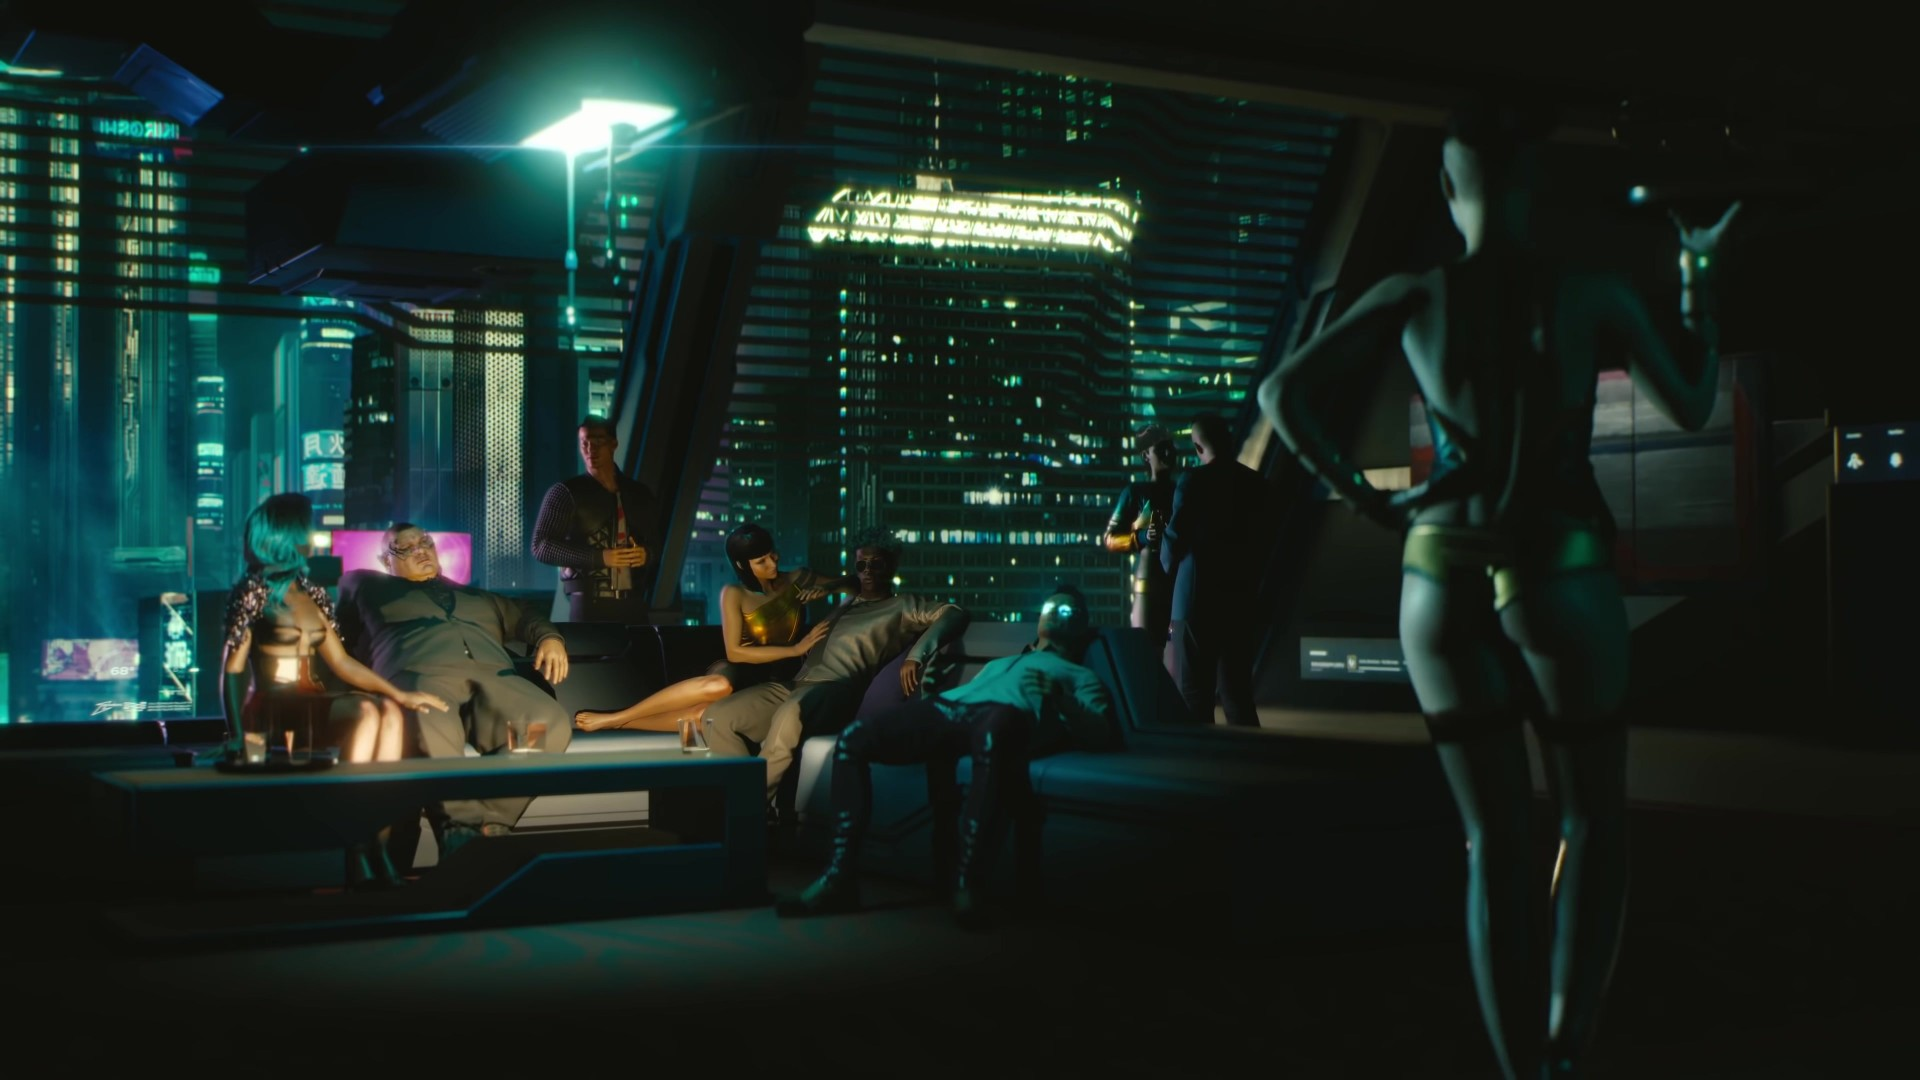 wallpaper cyberpunk 2077  e3 2018  screenshot  4k  games